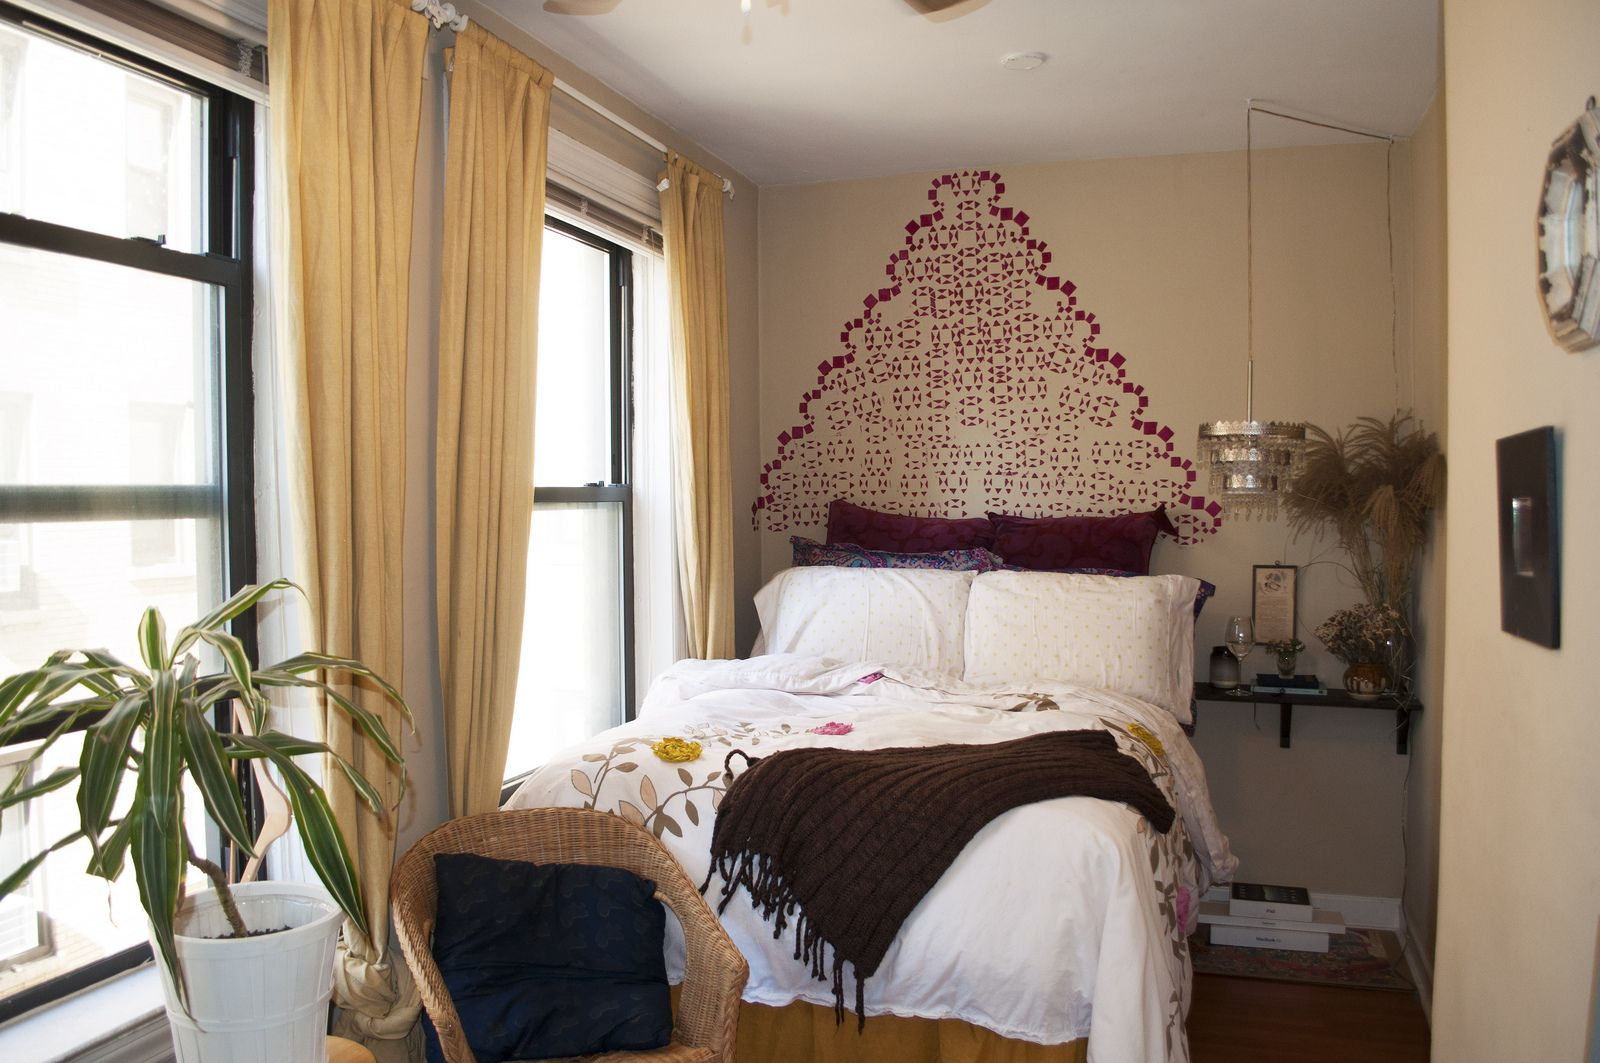 Make your own headboard by decorating the wall behind your